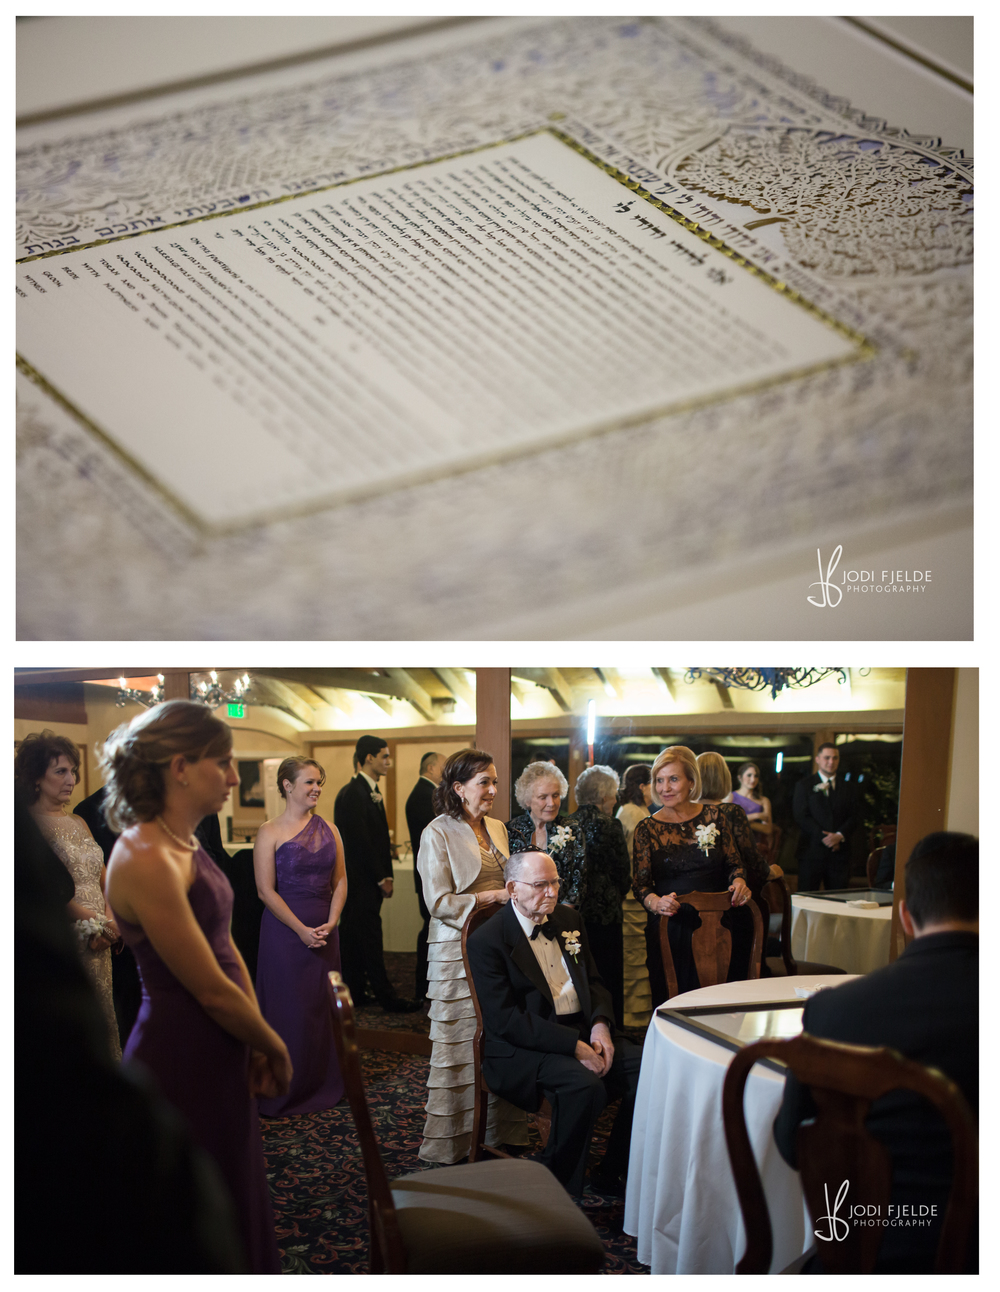 Benvenuto_Palm_Beach_Wedding_Jewish_Michelle & Jason_Jodi_Fjedle_Photography 34.jpg